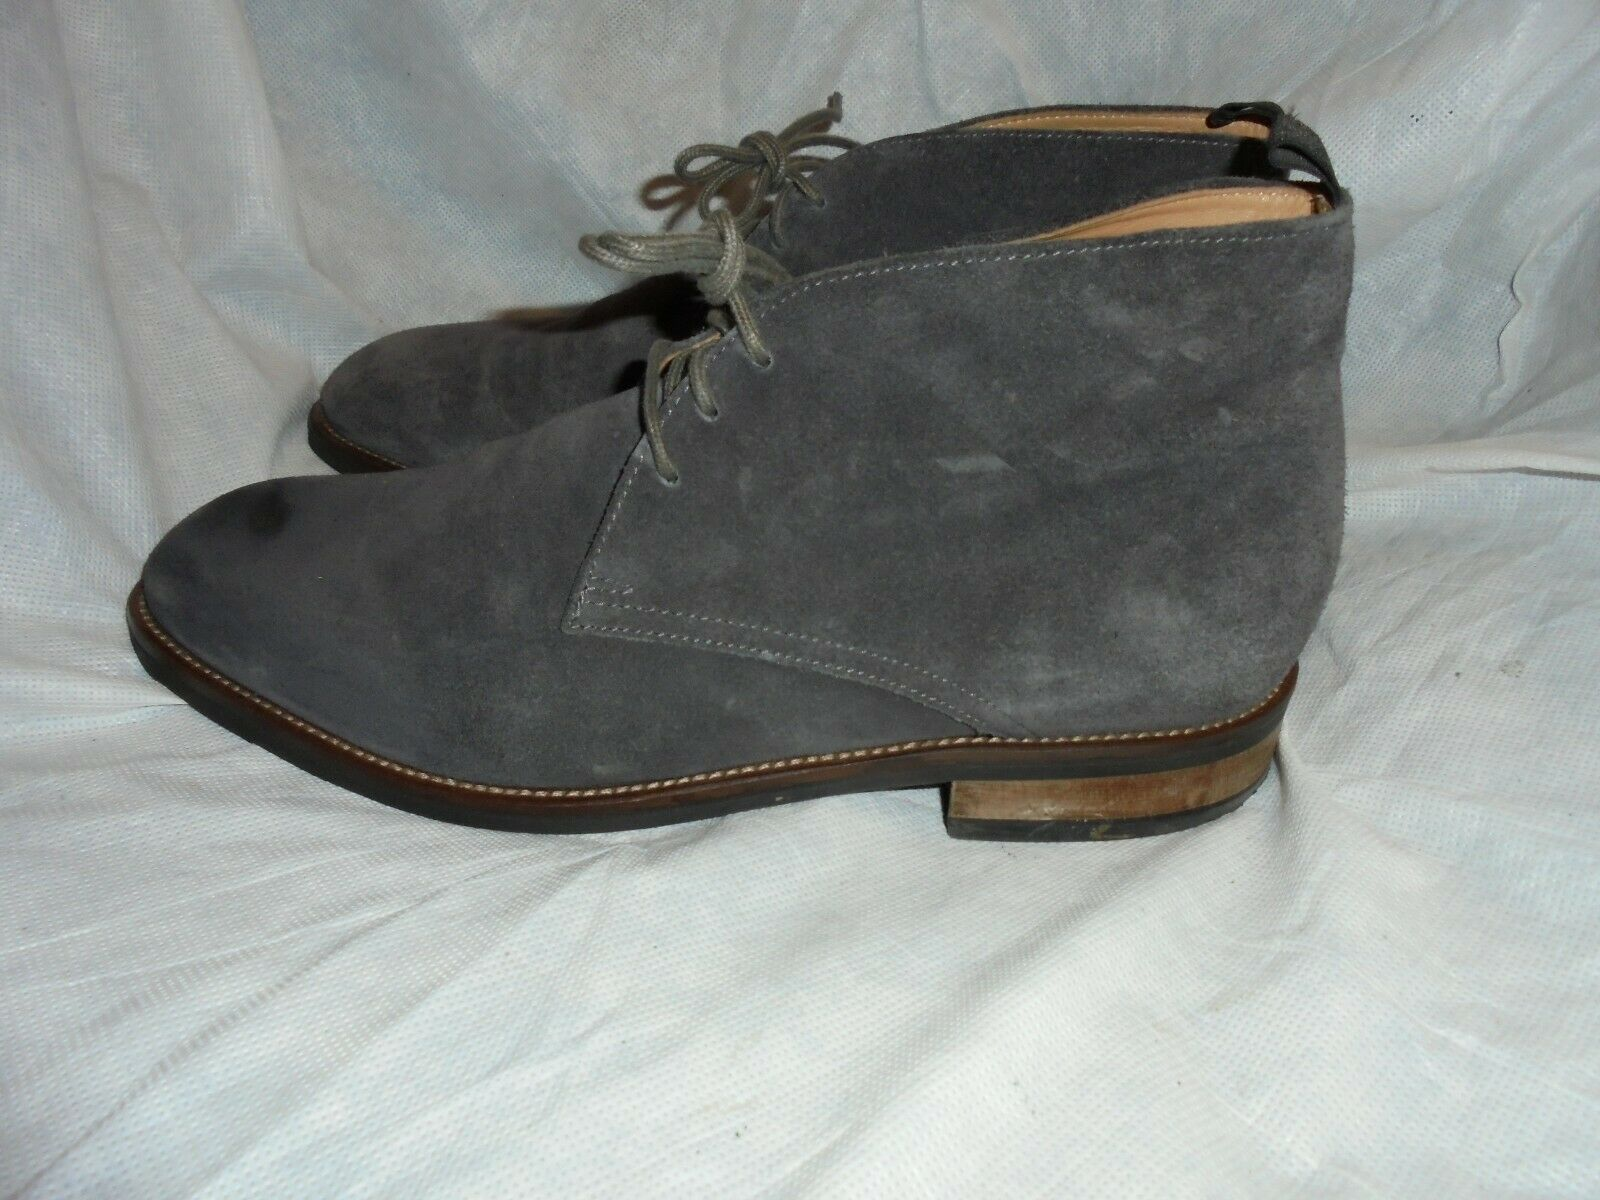 MARKS & SPENCER MEN GREY SUEDE LEATHER LACE UP ANKLE BOOT SIZE UK 9.5 EU 43.5